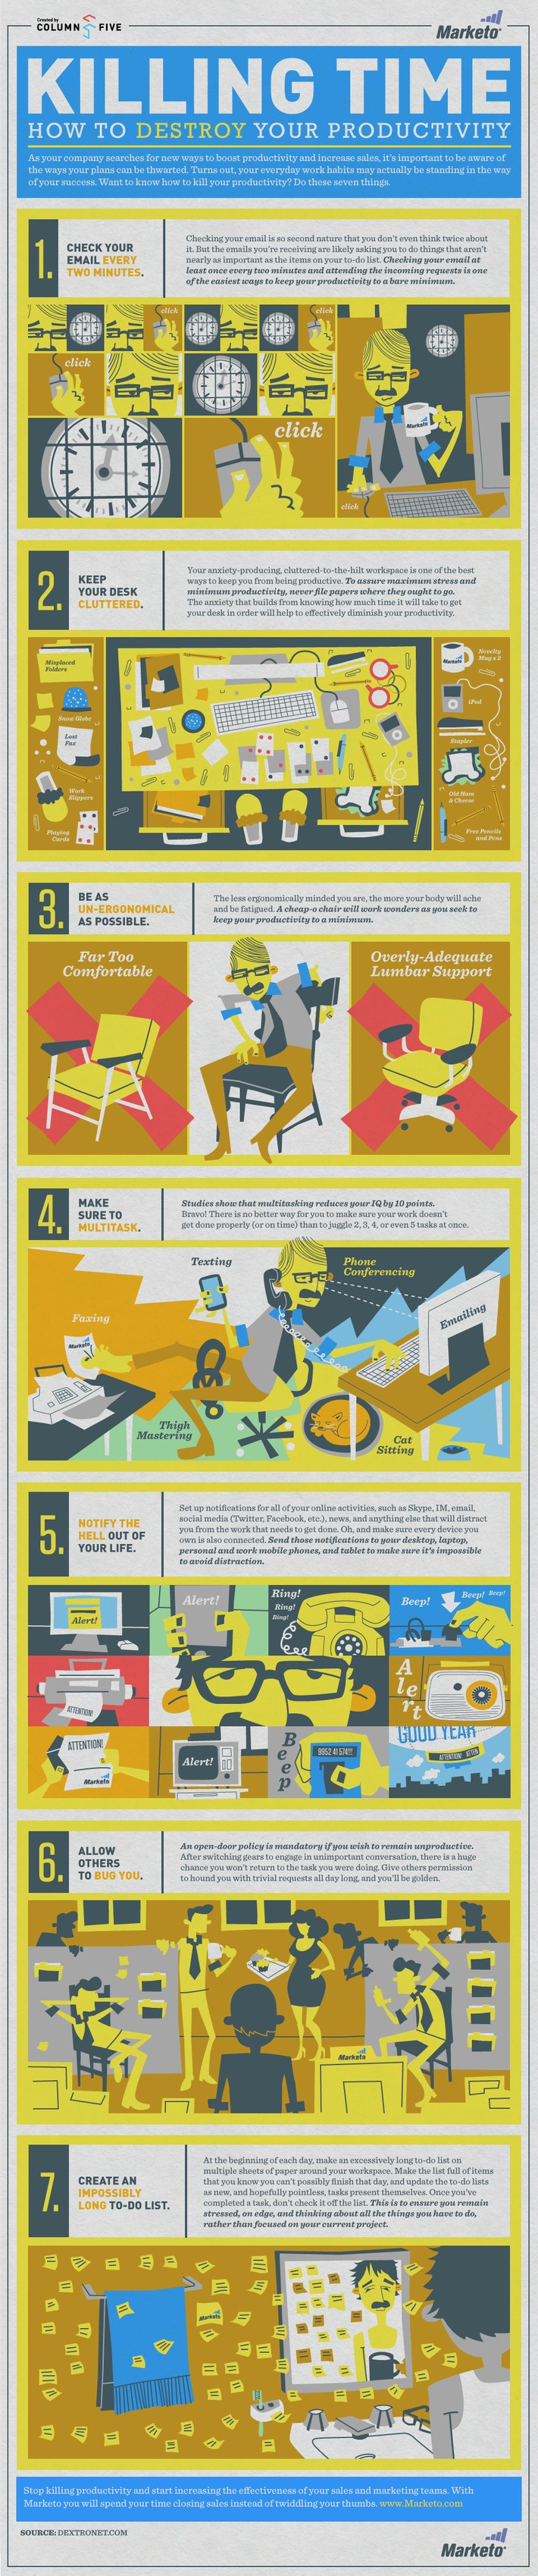 Killing Time: How to Destroy Your Productivity [Infographic] | Coaching Leaders | Scoop.it